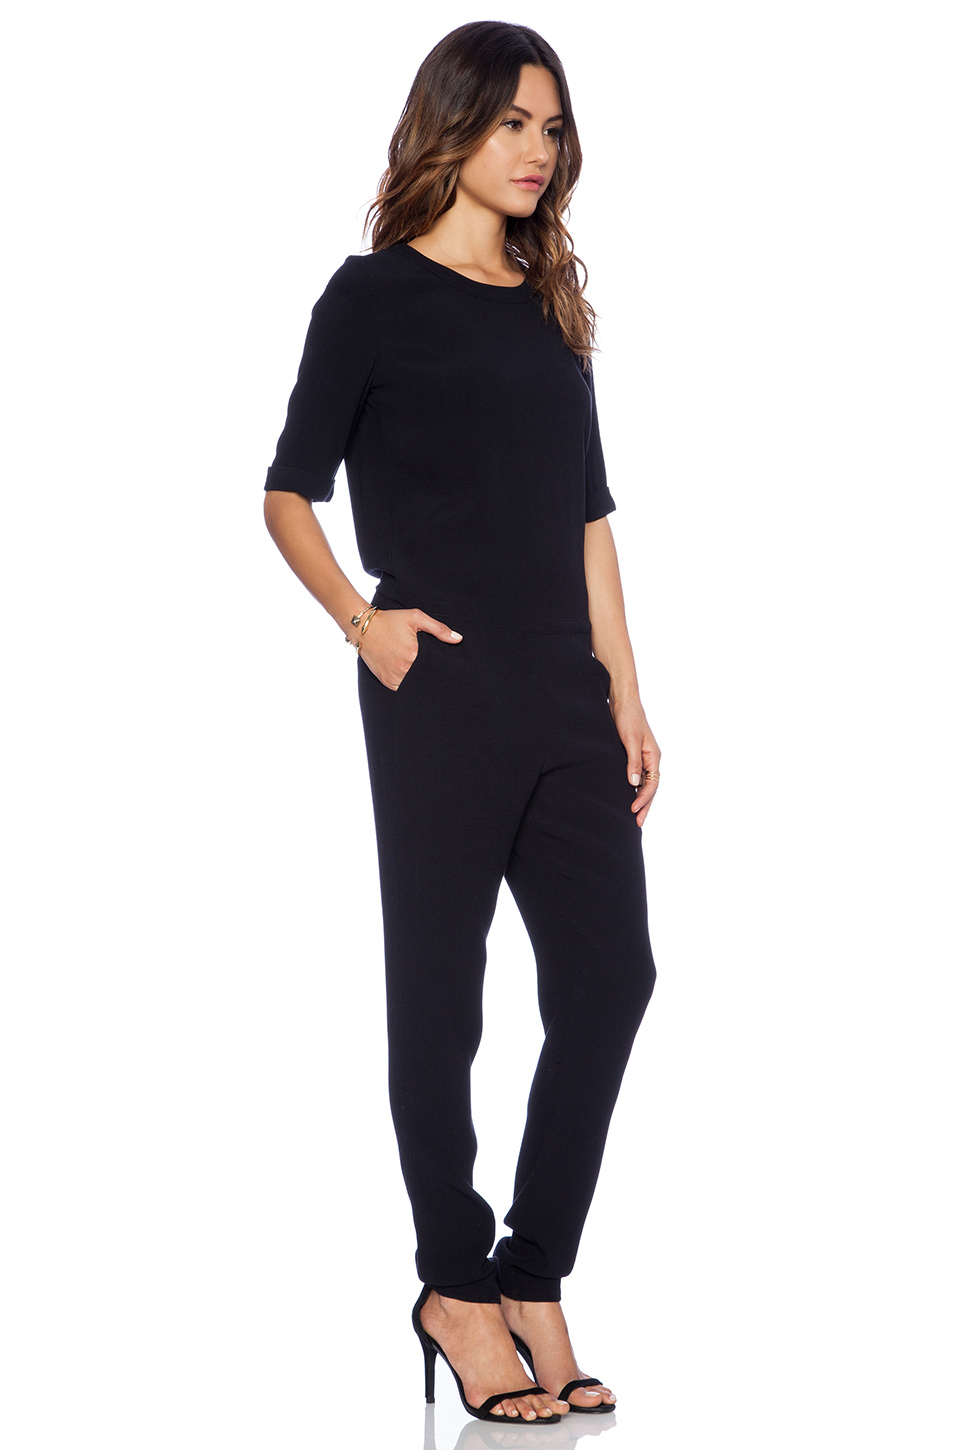 df656f0cefd3 3 4 Sleeve Jumpsuit Related Keywords   Suggestions - 3 4 Sleeve ...